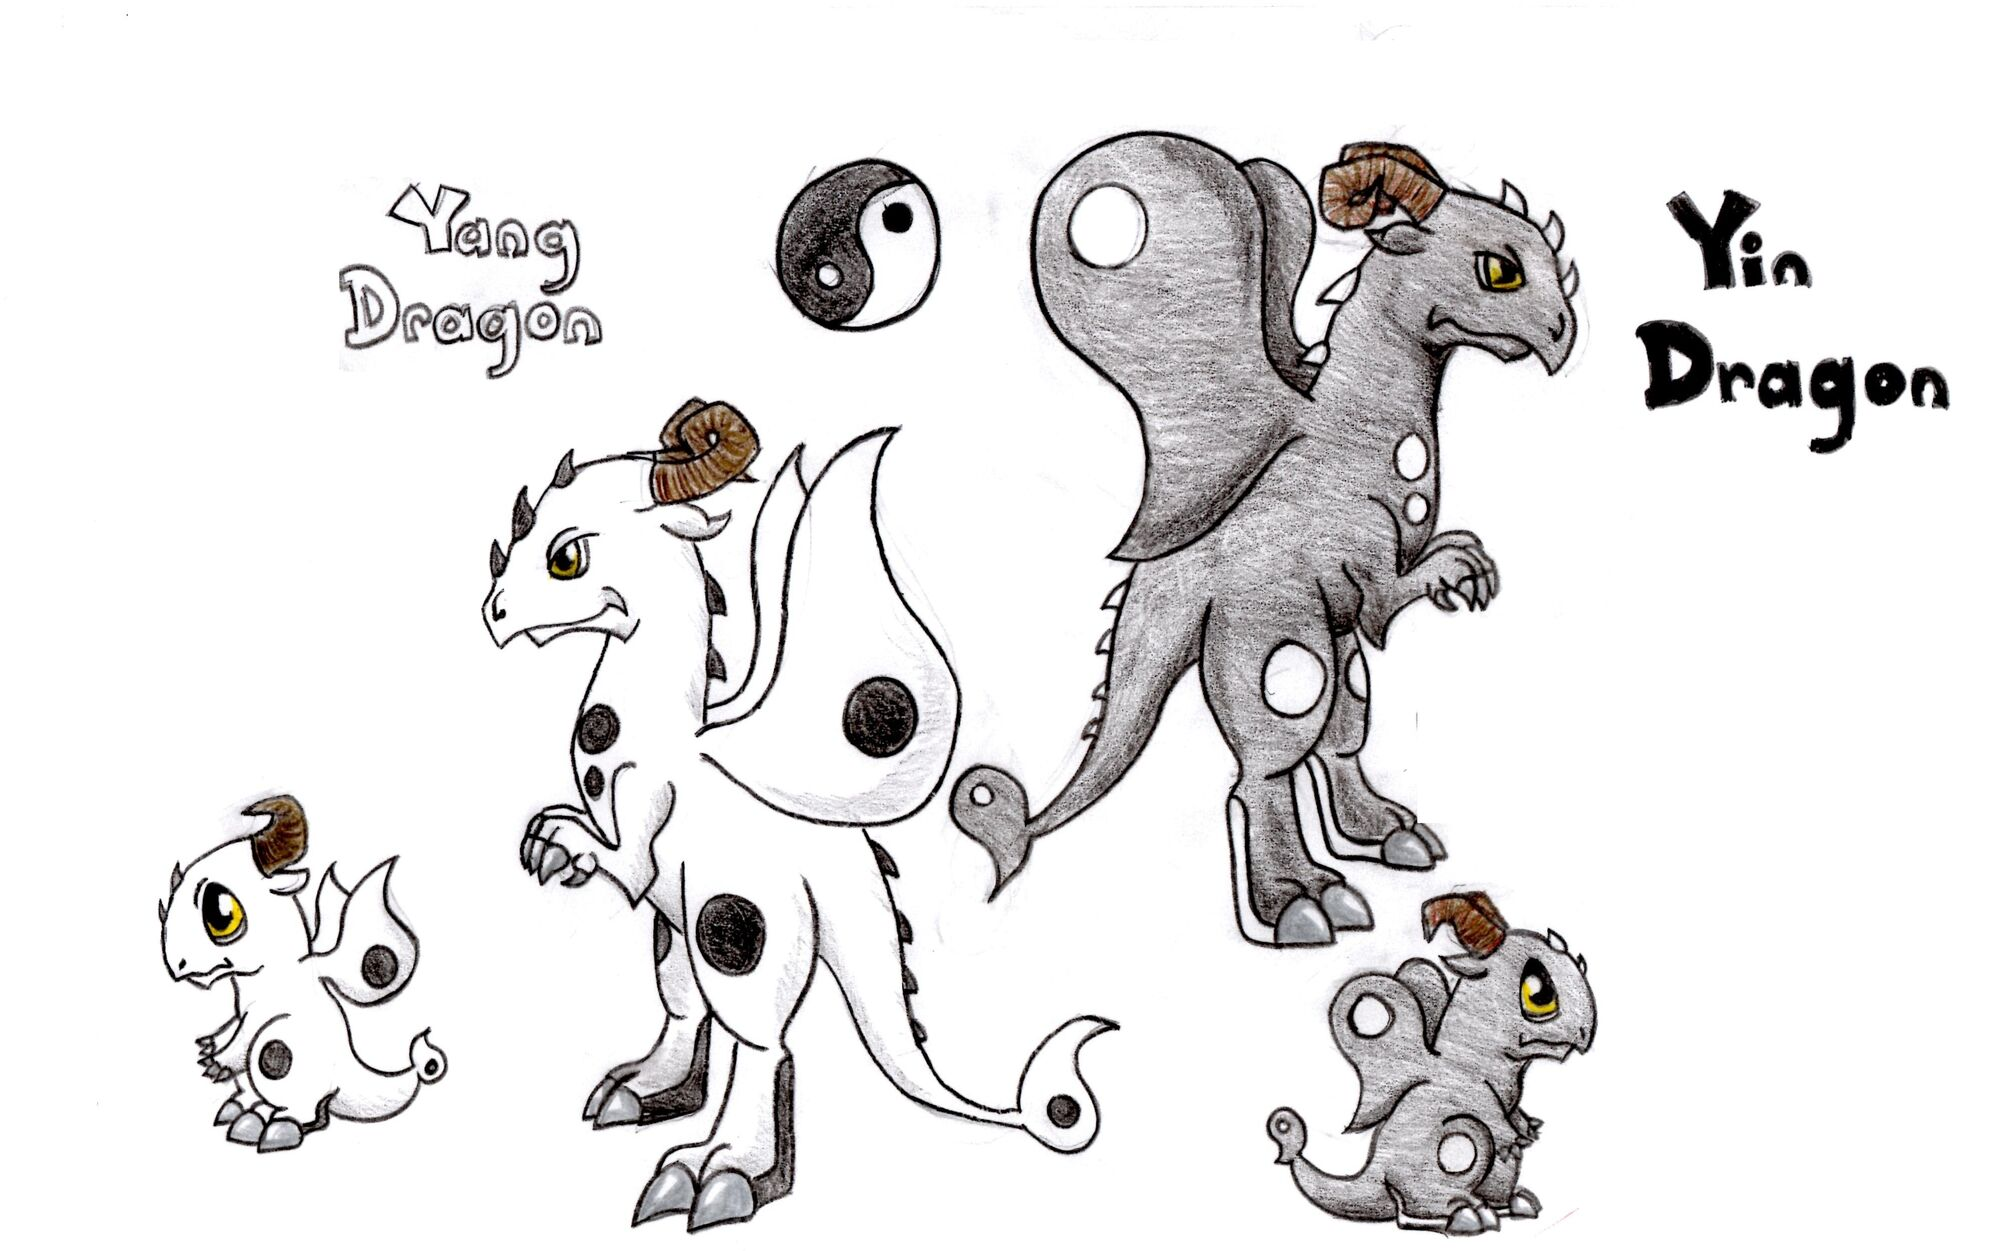 User blog:WhiteTigerlily/My Dragon Ideas for DragonVale